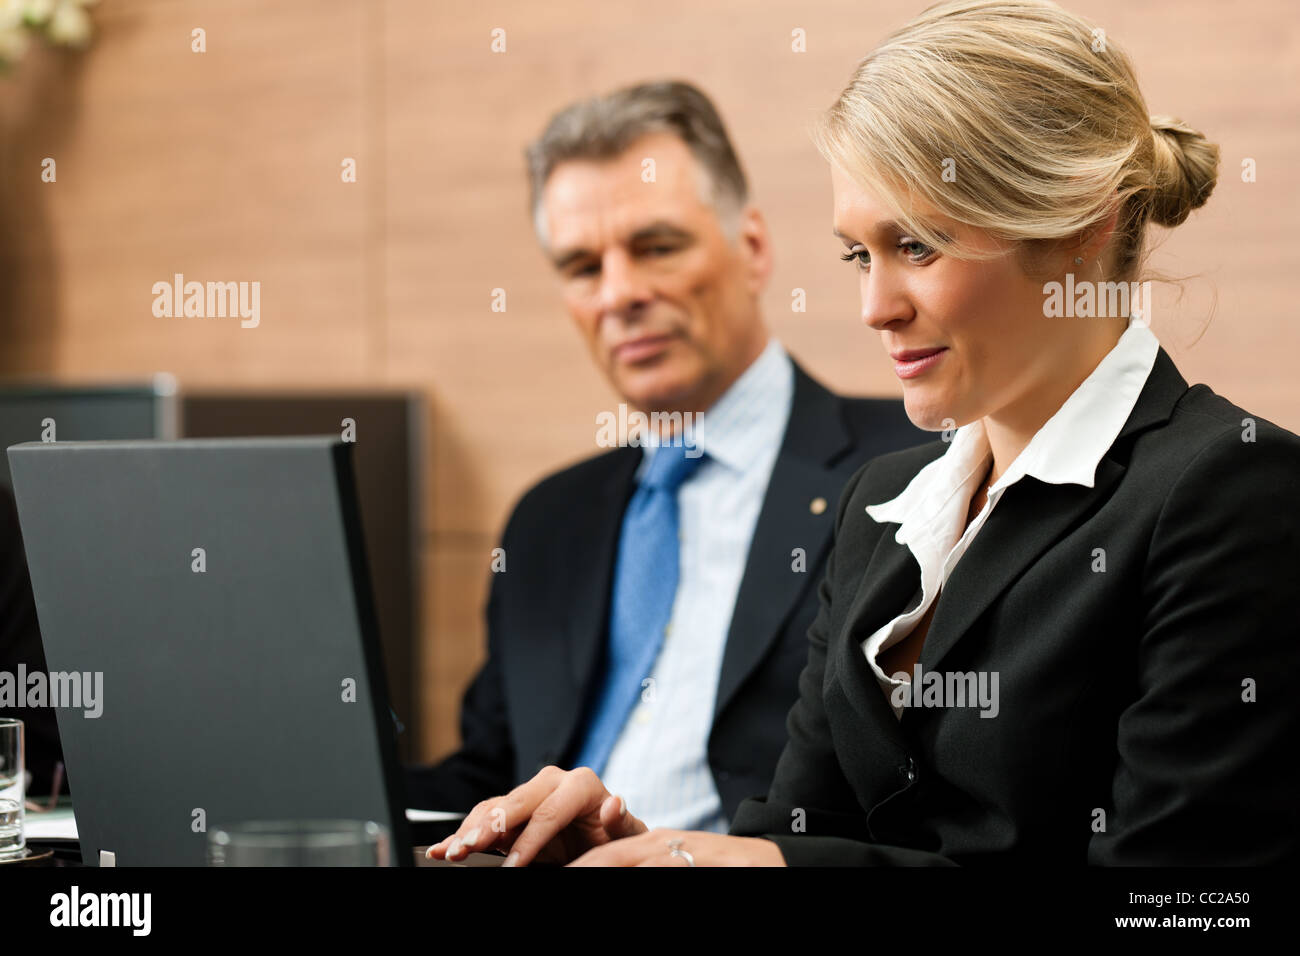 Lawyer with his secretary in his office, she is typing something - Stock Image